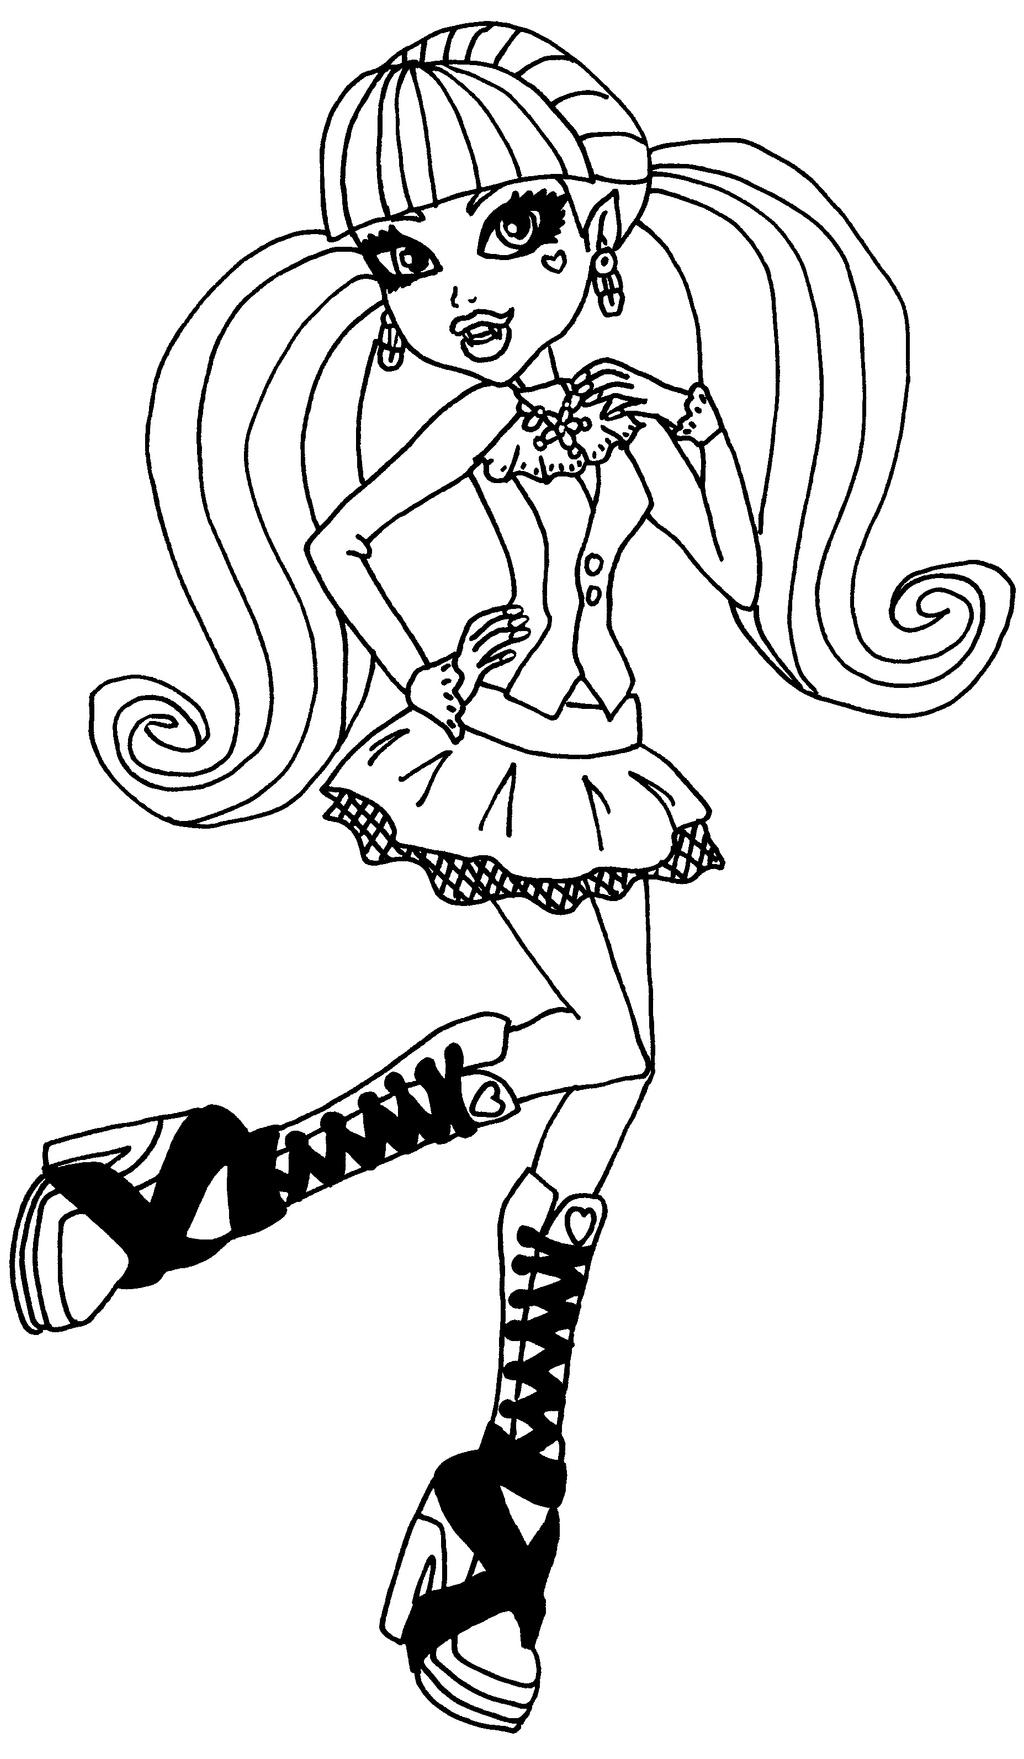 Draculaura By Elfkena On Deviantart Draculaura Coloring Pages